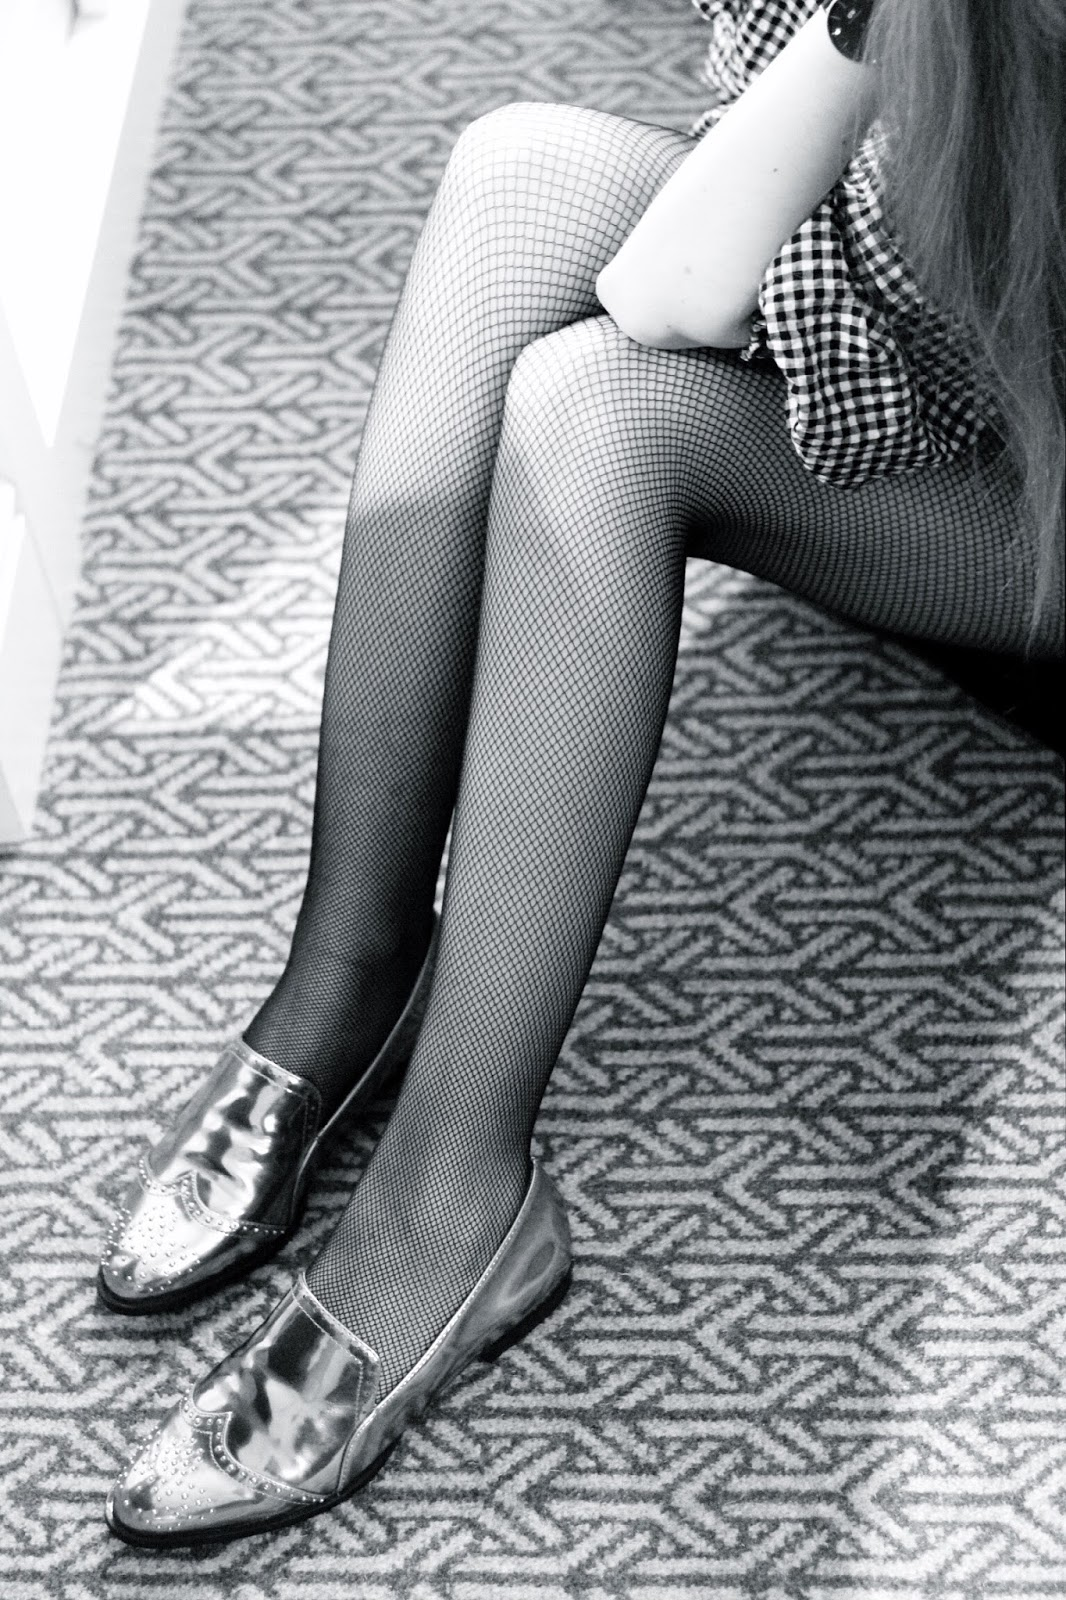 Black and White Photography of Fishnet Tights